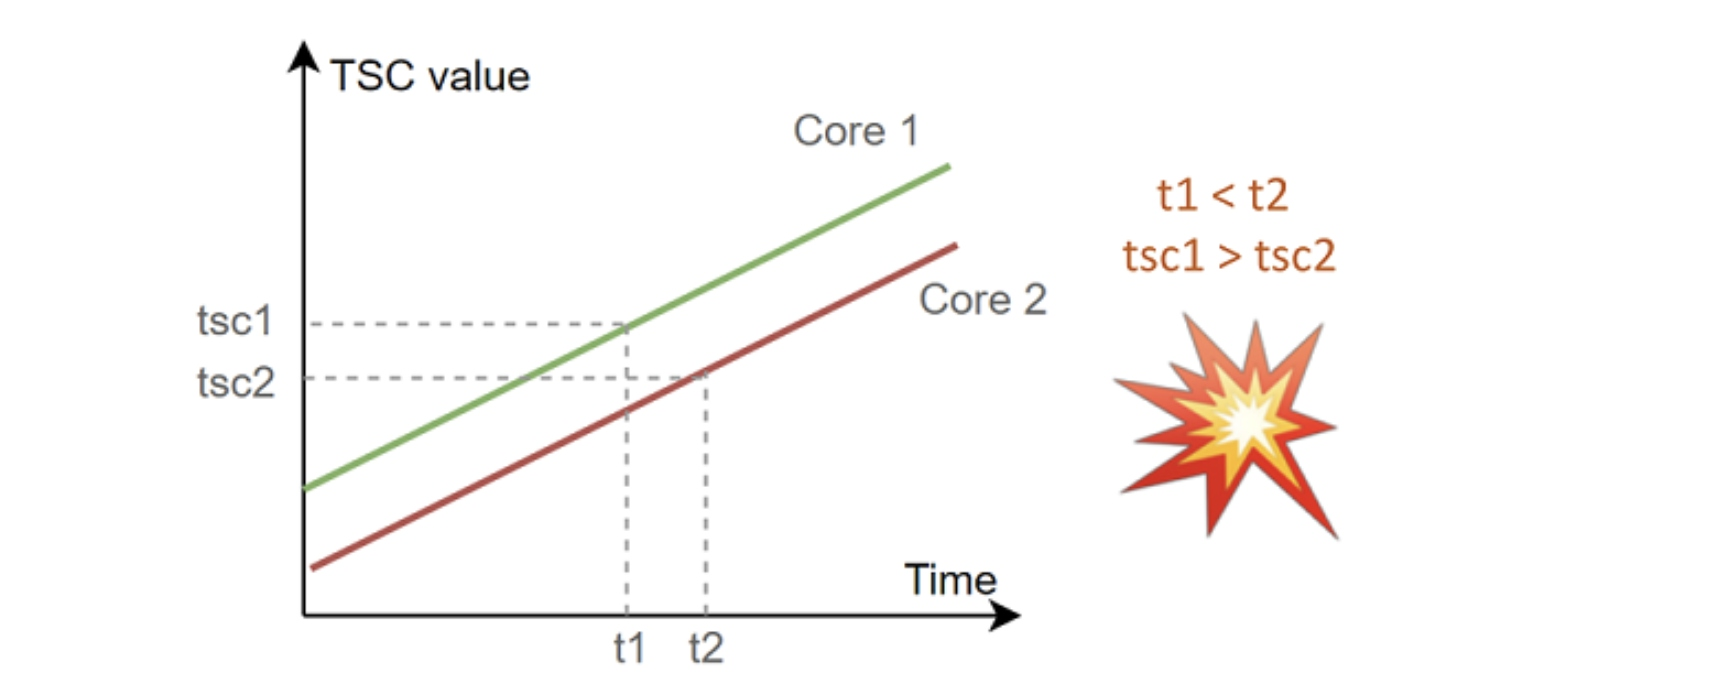 TSC value calculation for multiple cores